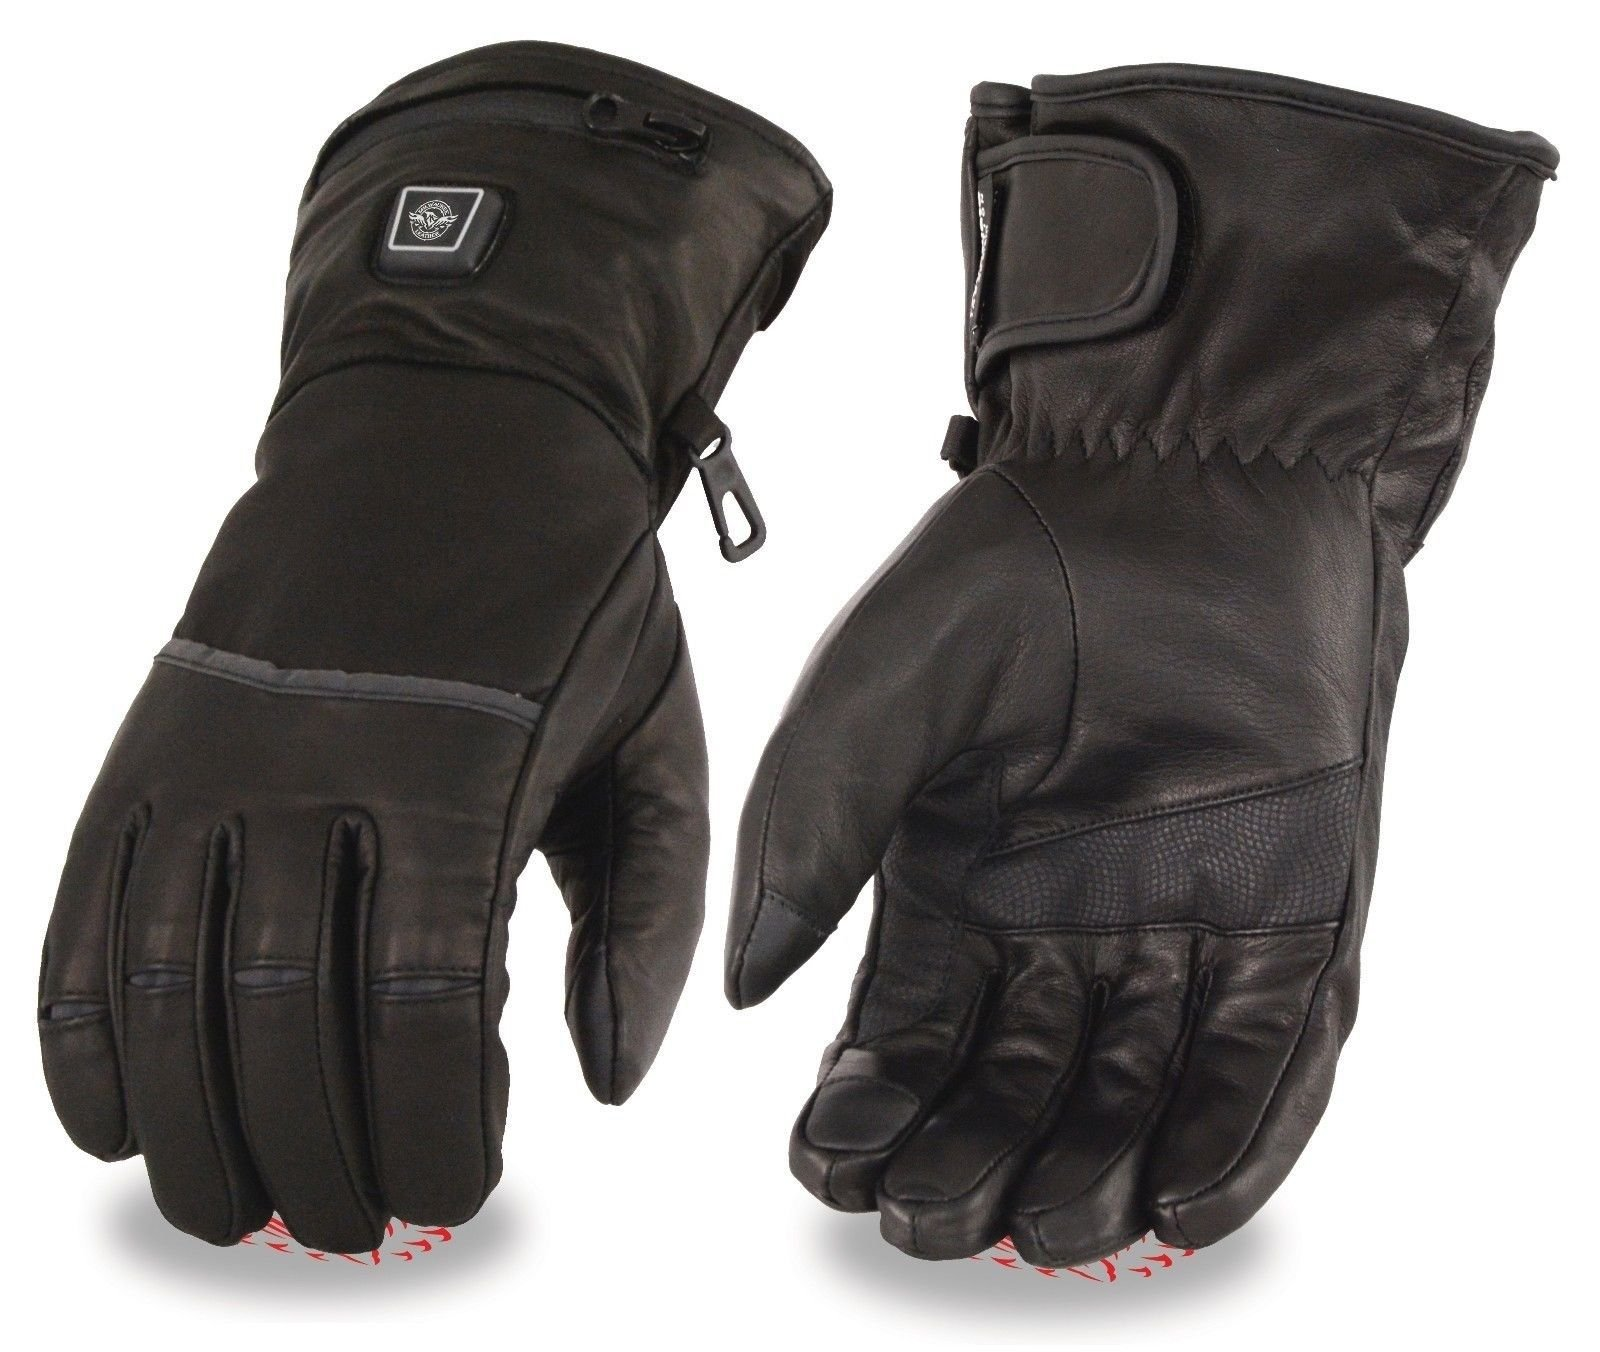 MEN'S MOTORCYCLE HEATED GLOVES W/ TOUCH SCREEN FINGERS BUTTER SOFT LEATHER (XS Regular)